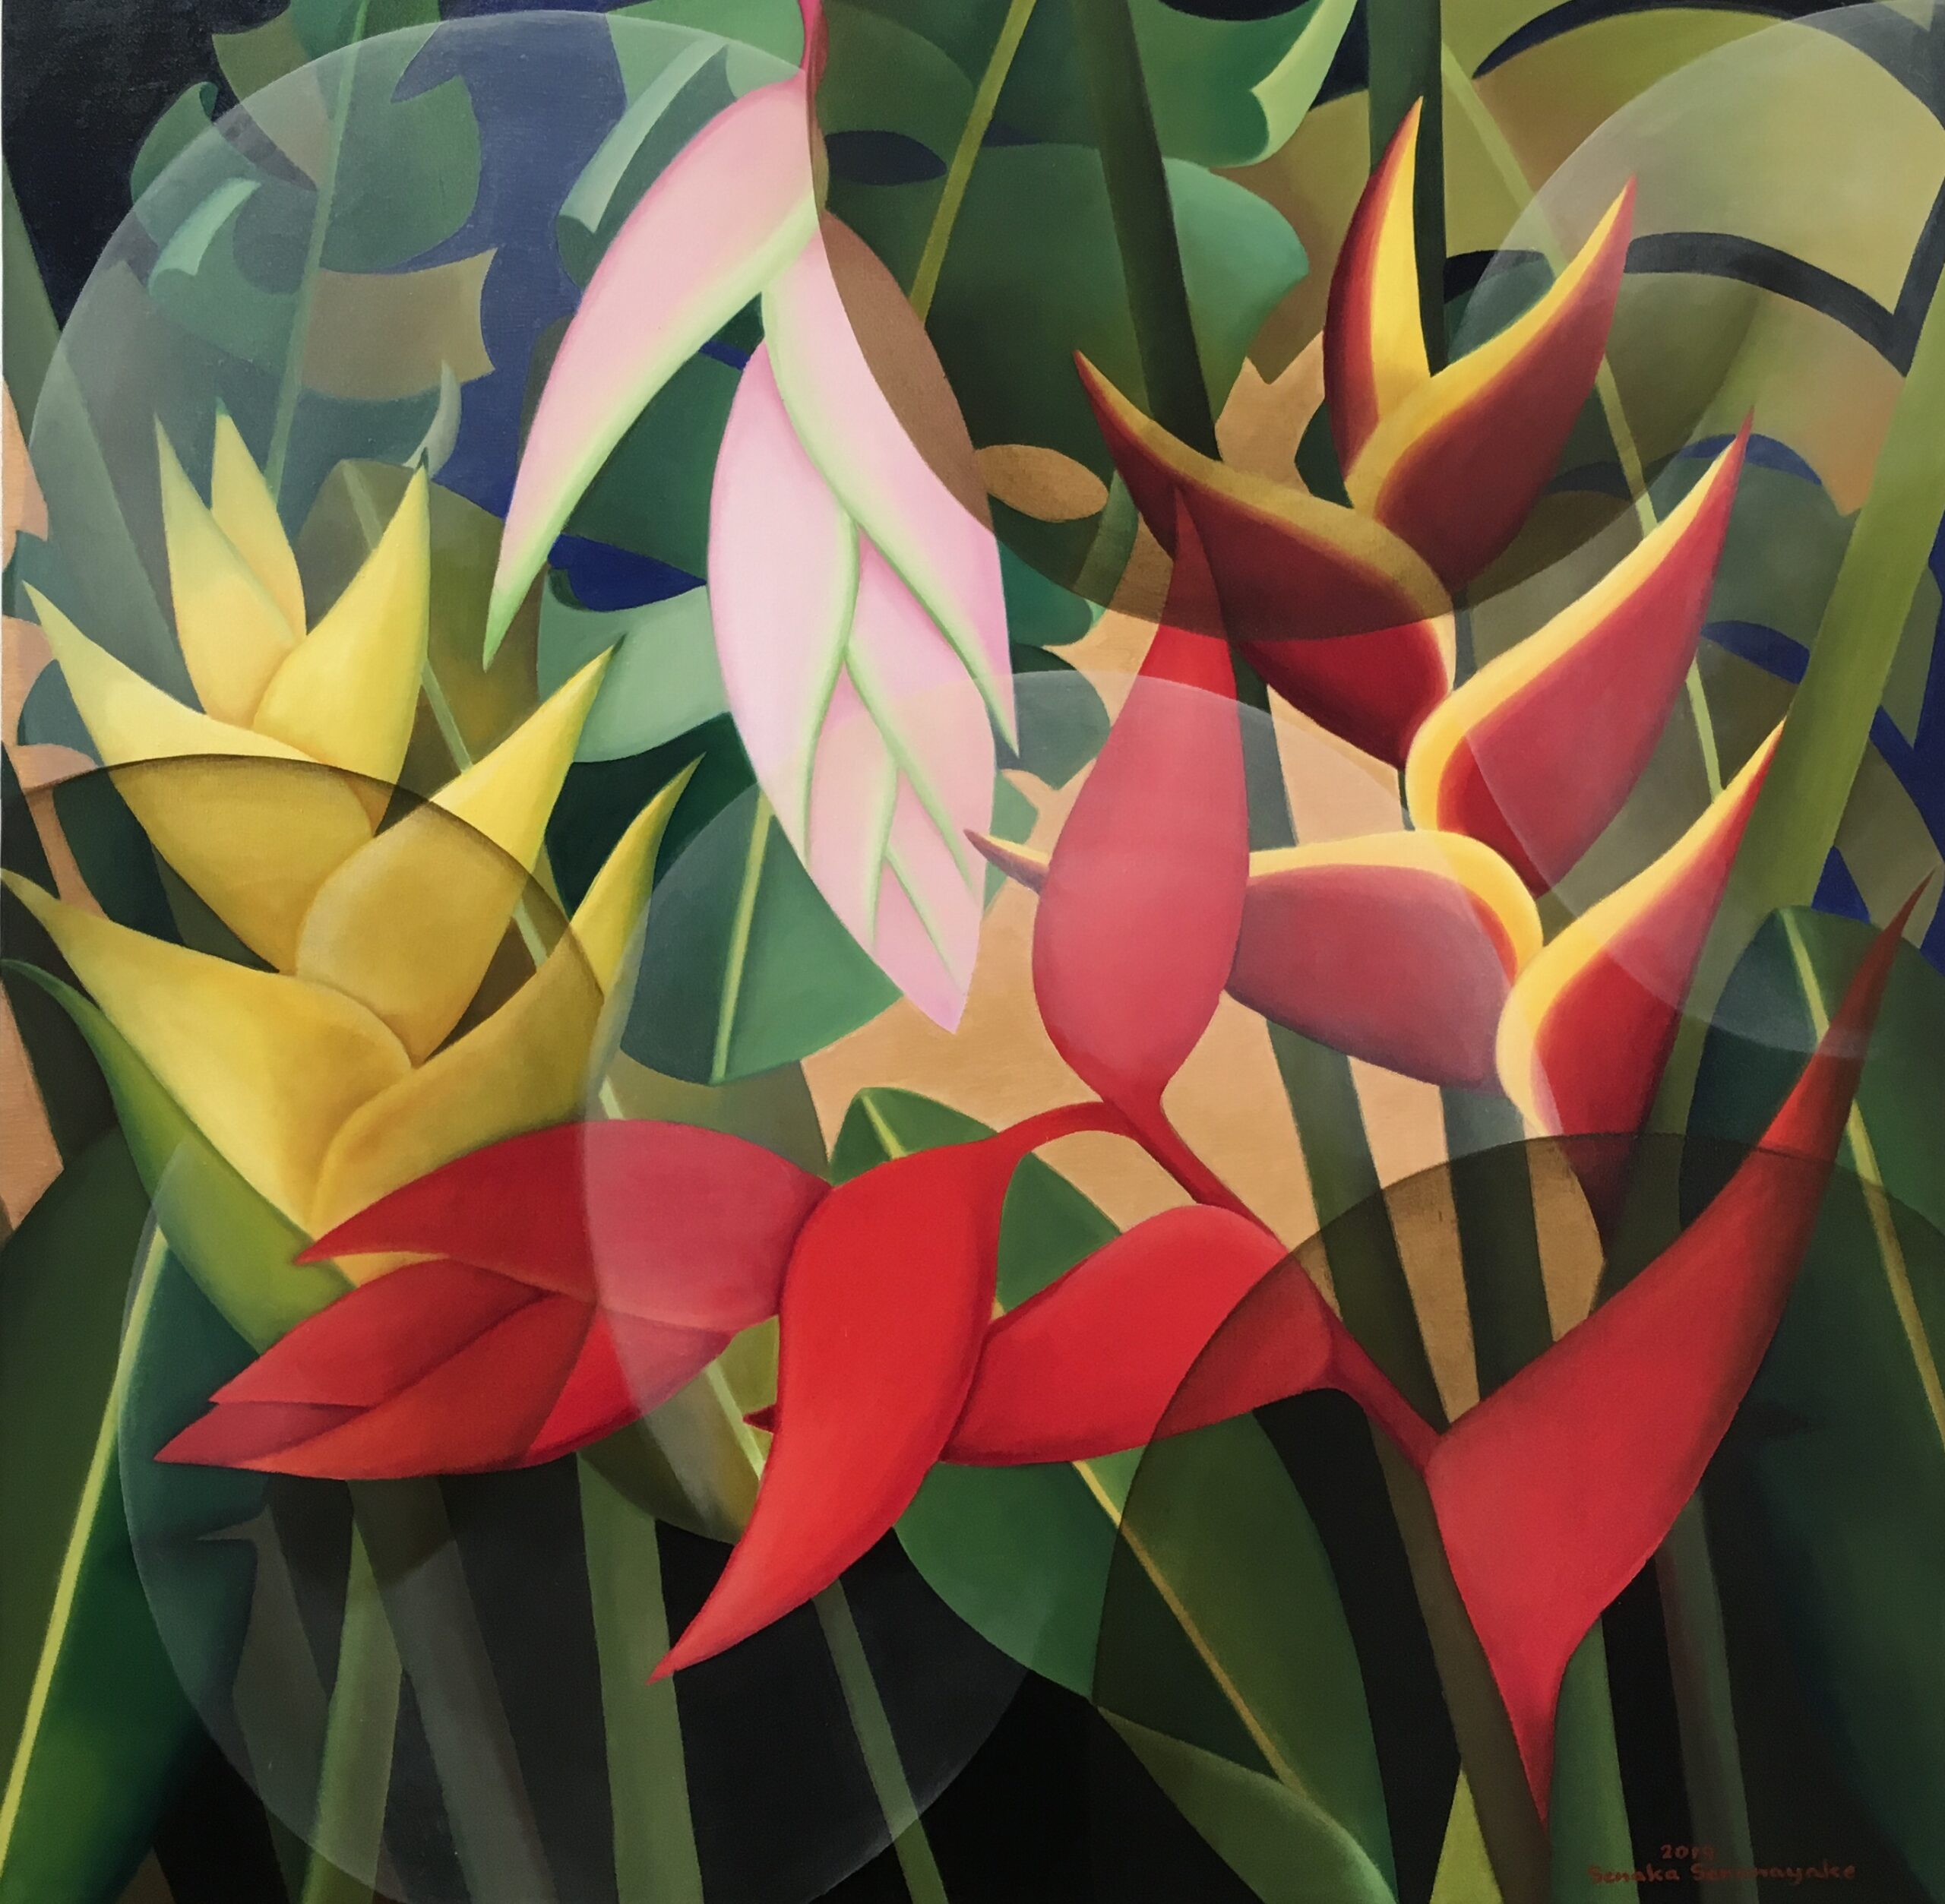 SENAKA SENANAYAKE (b. 1951) Heliconias, 2019 Oil on canvas Signed and dated 122 x 122 cm 48 1/8 x 48 1/8 in